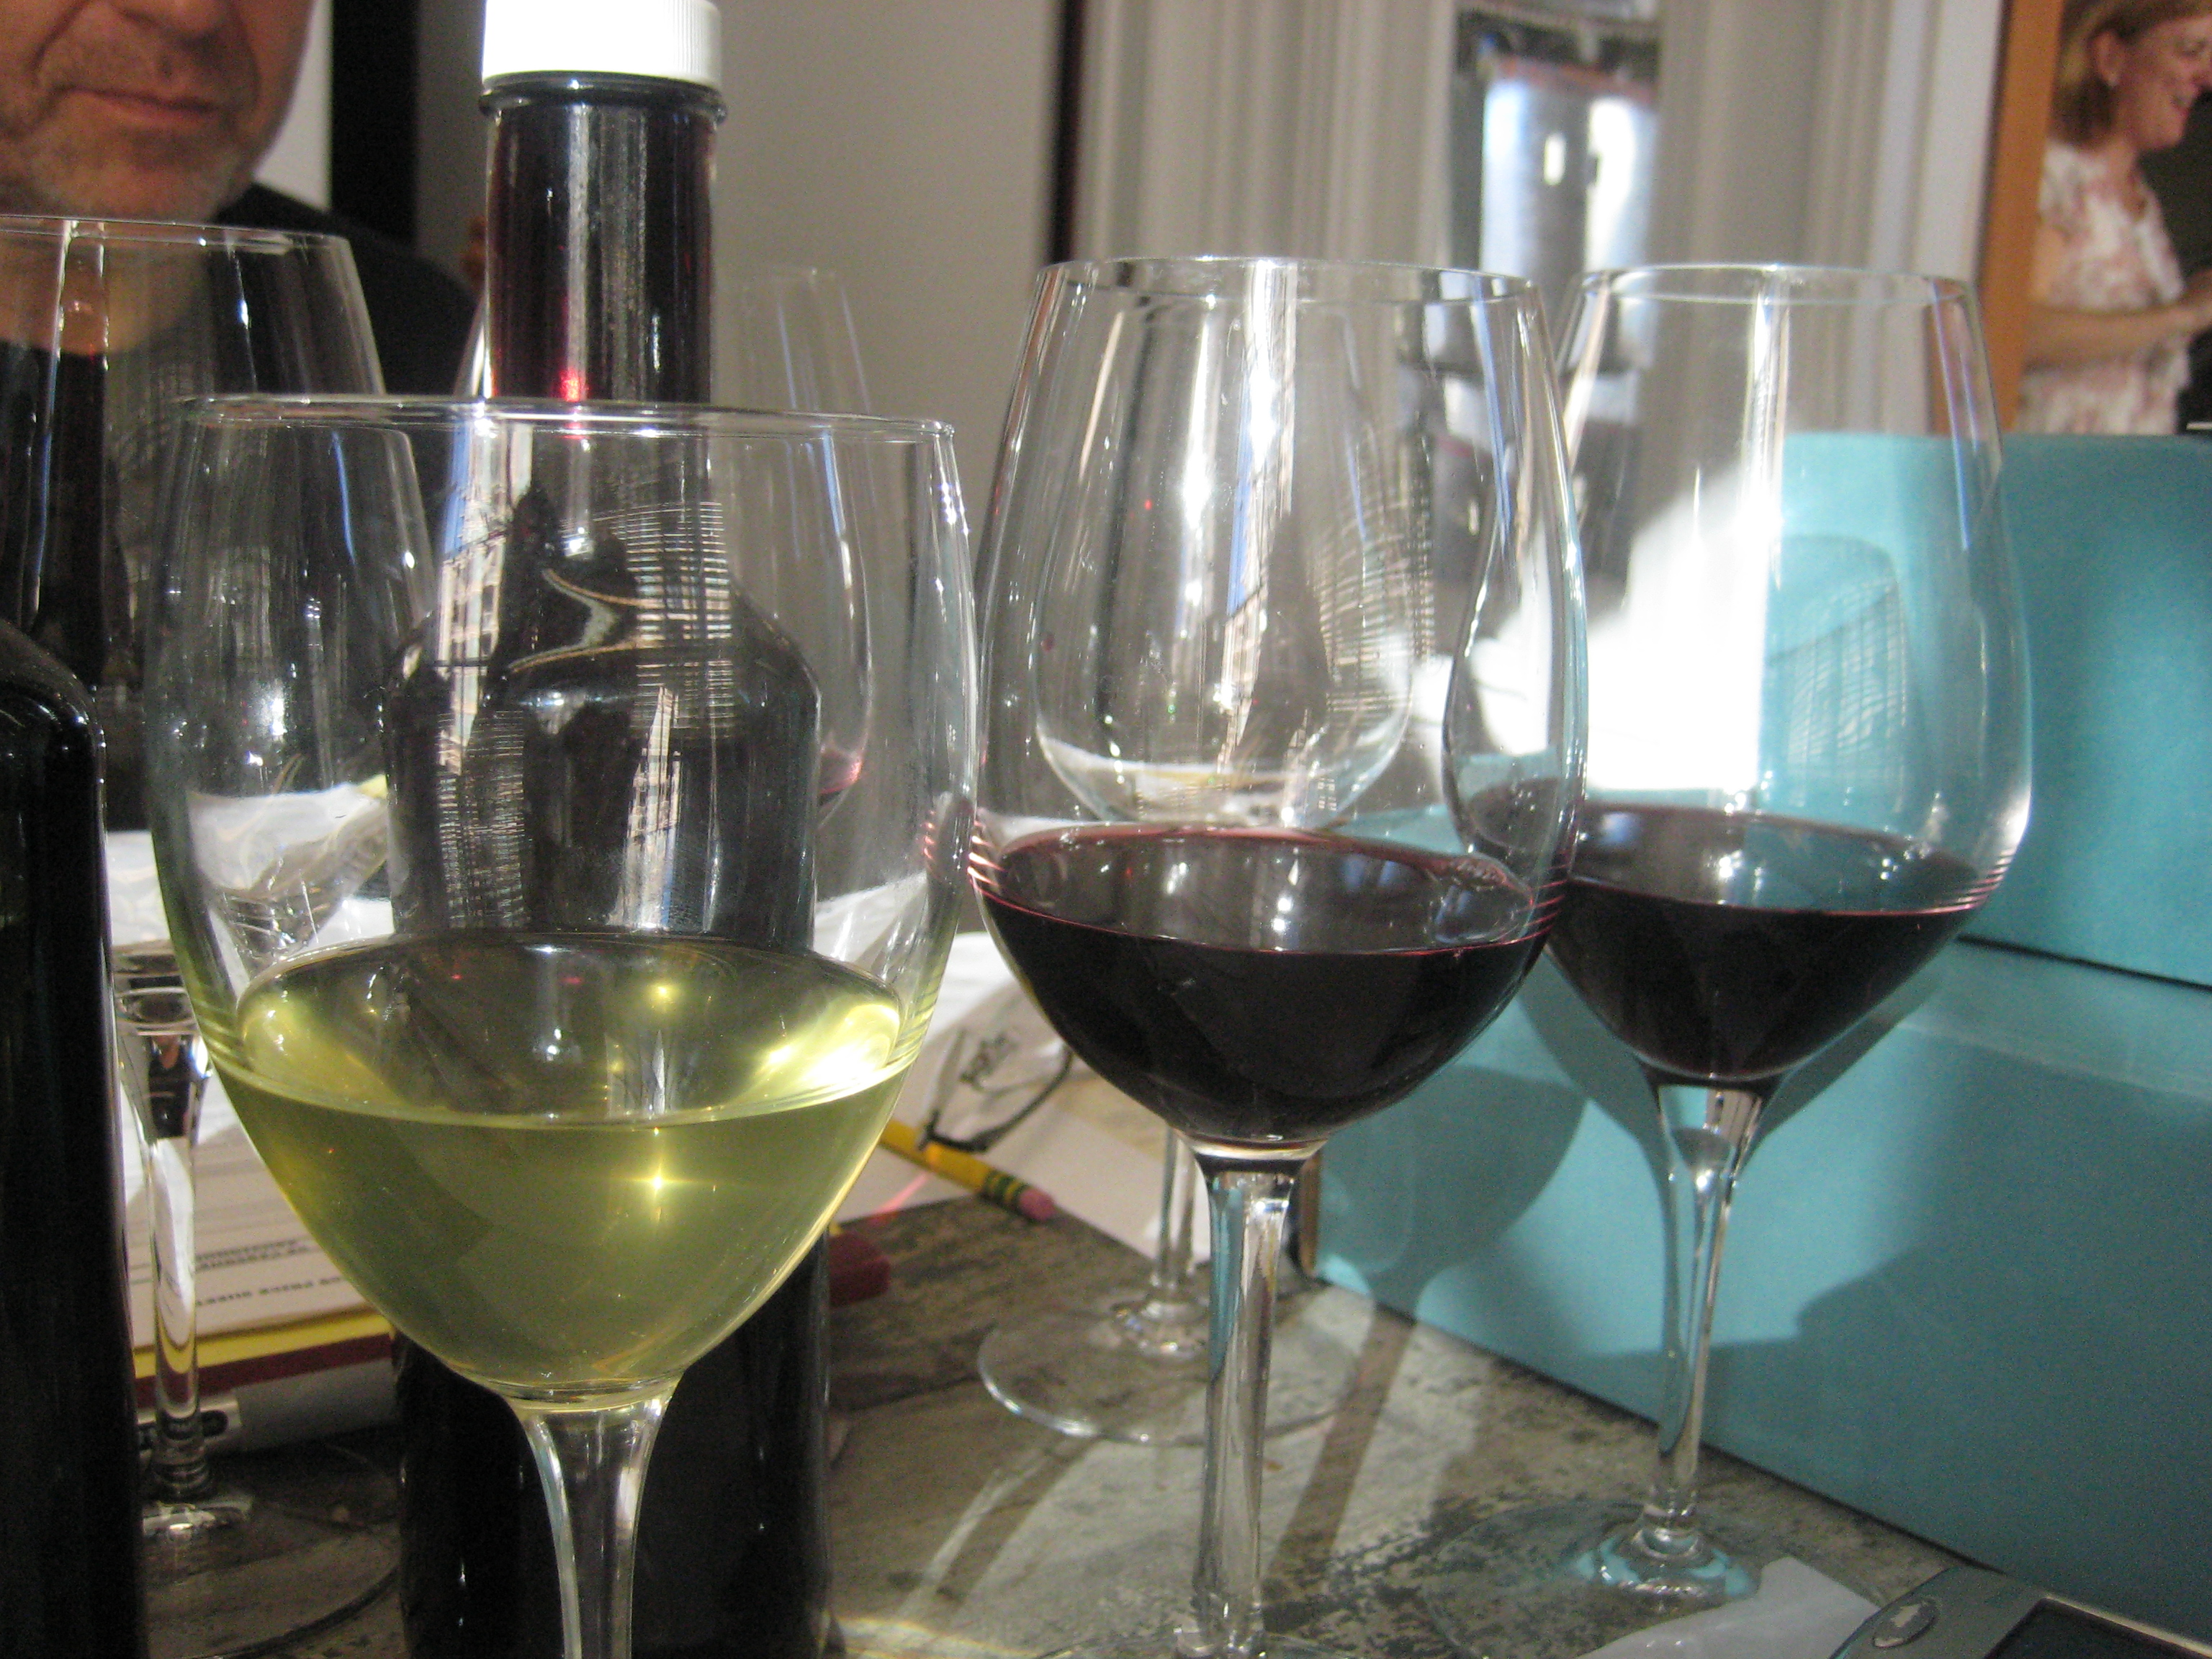 Wine lined up for tasting.